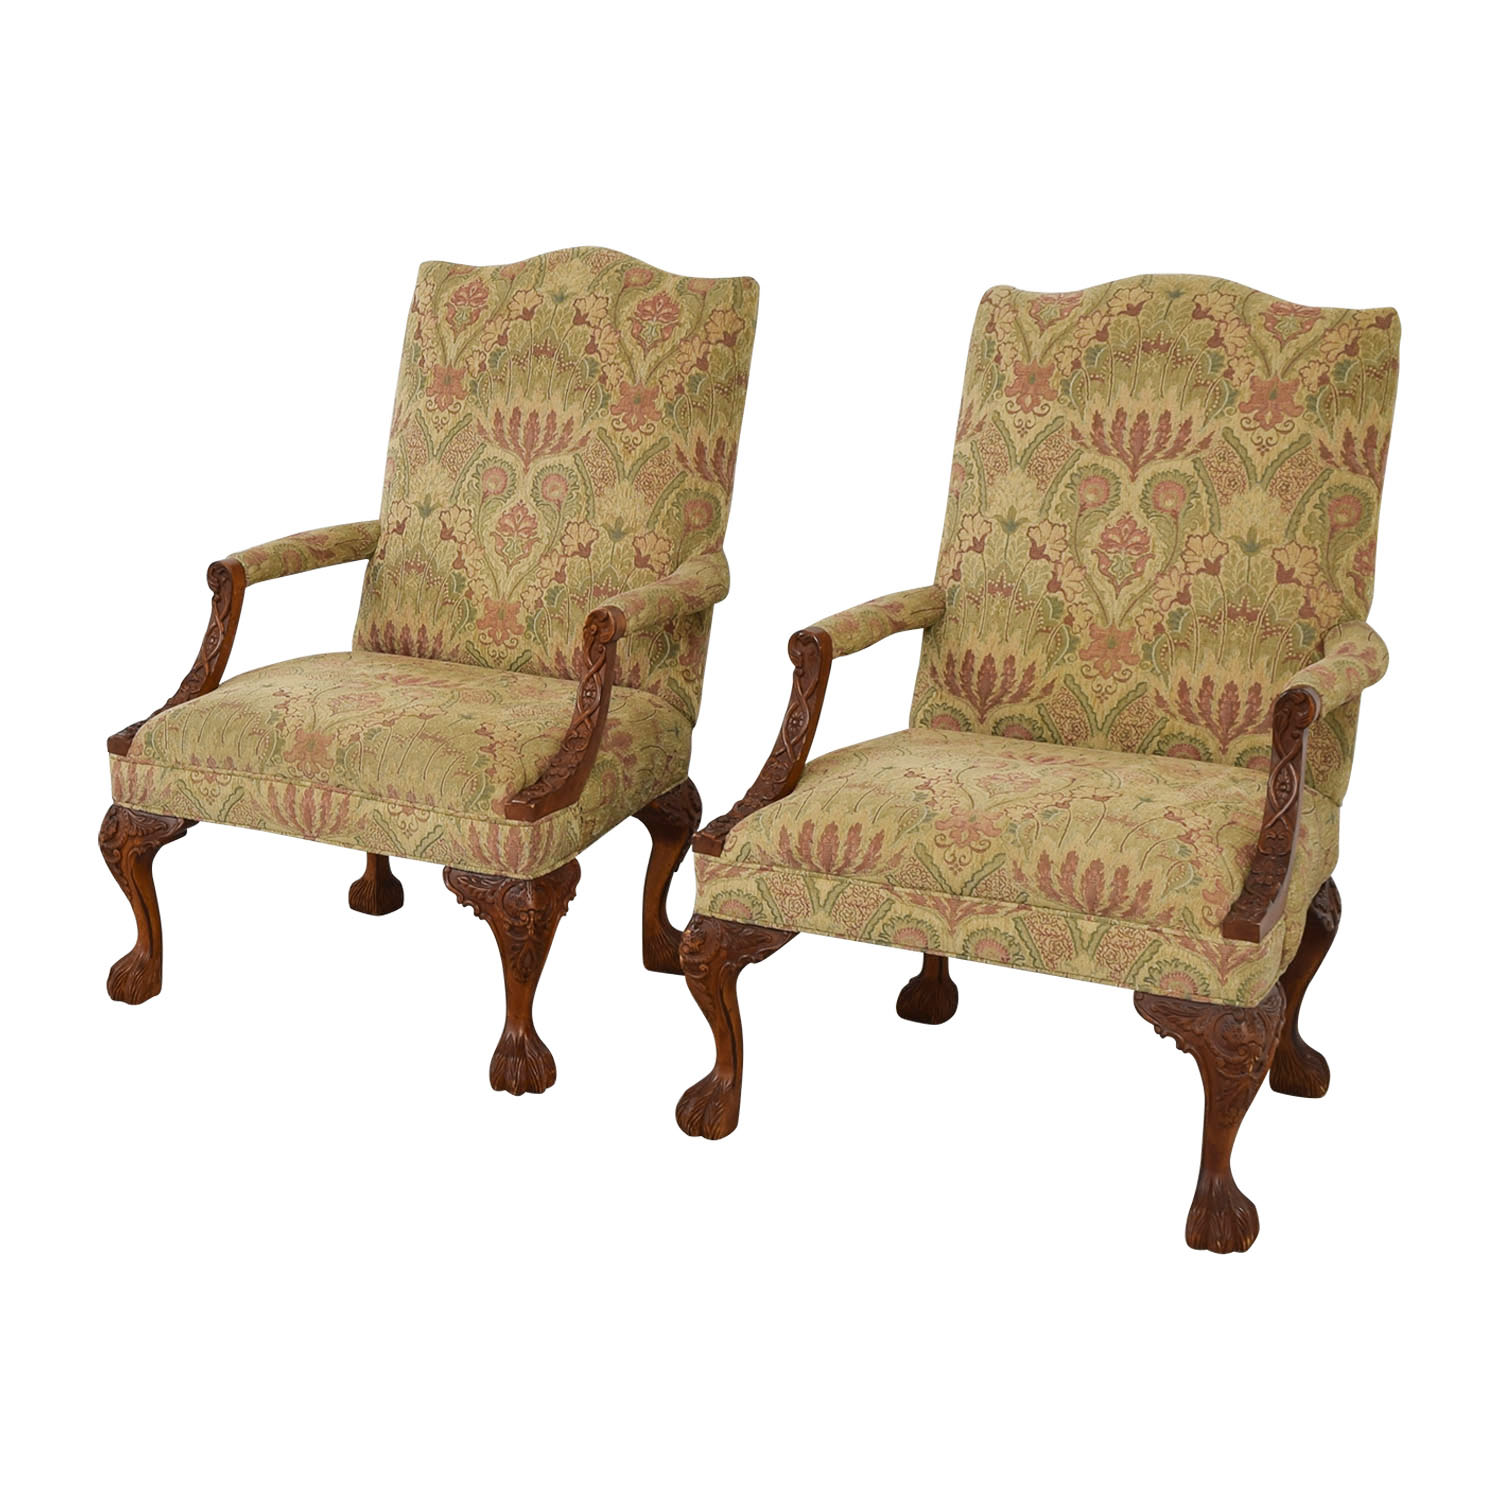 Miraculous 87 Off Sam Moore Sam Moore Tibetan Tapestry Old World Finish Carved Wood Chairs Chairs Machost Co Dining Chair Design Ideas Machostcouk